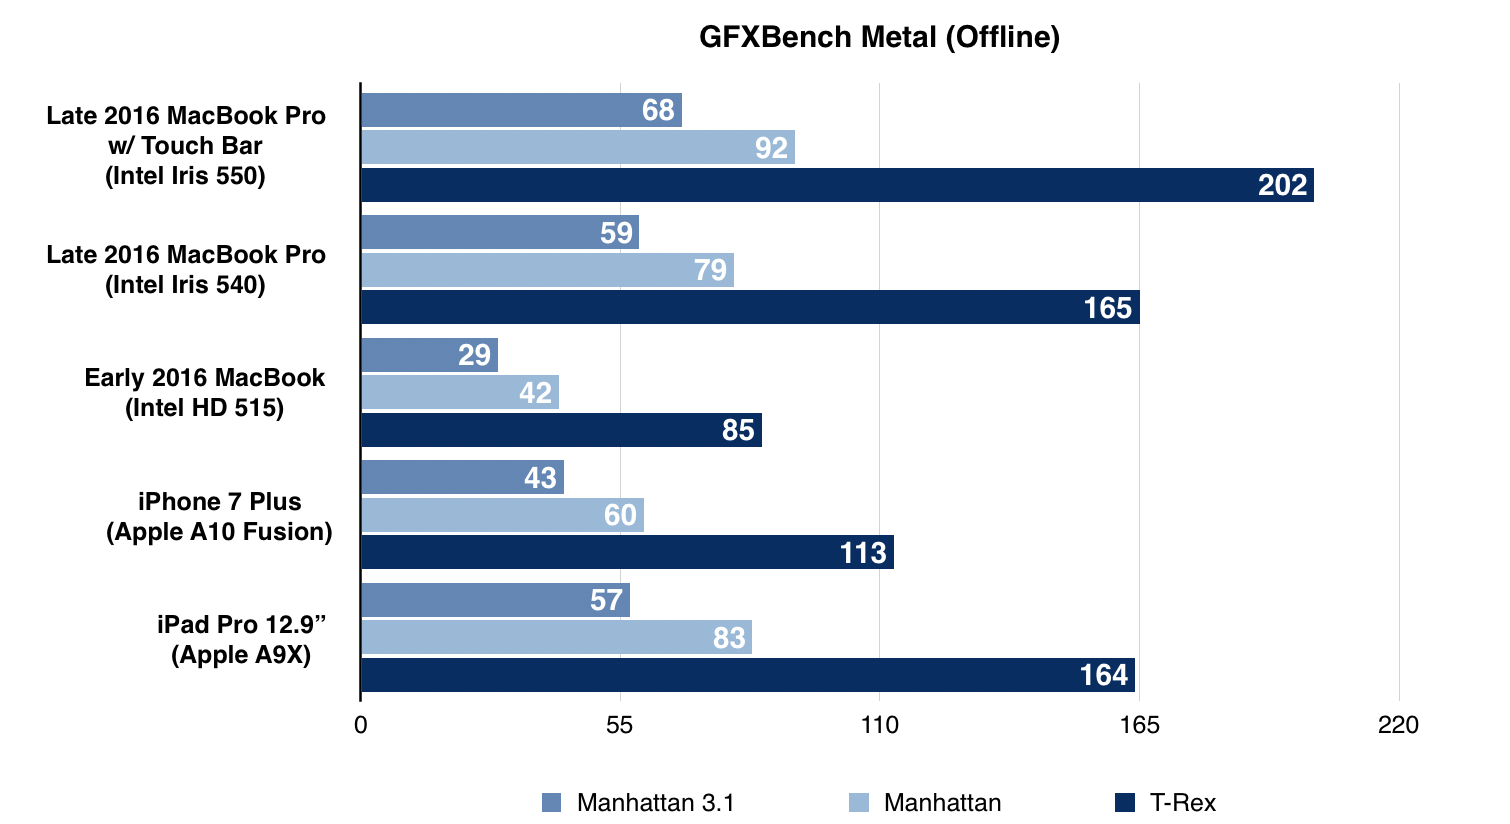 gfxbench-metal-macbook-touchbar